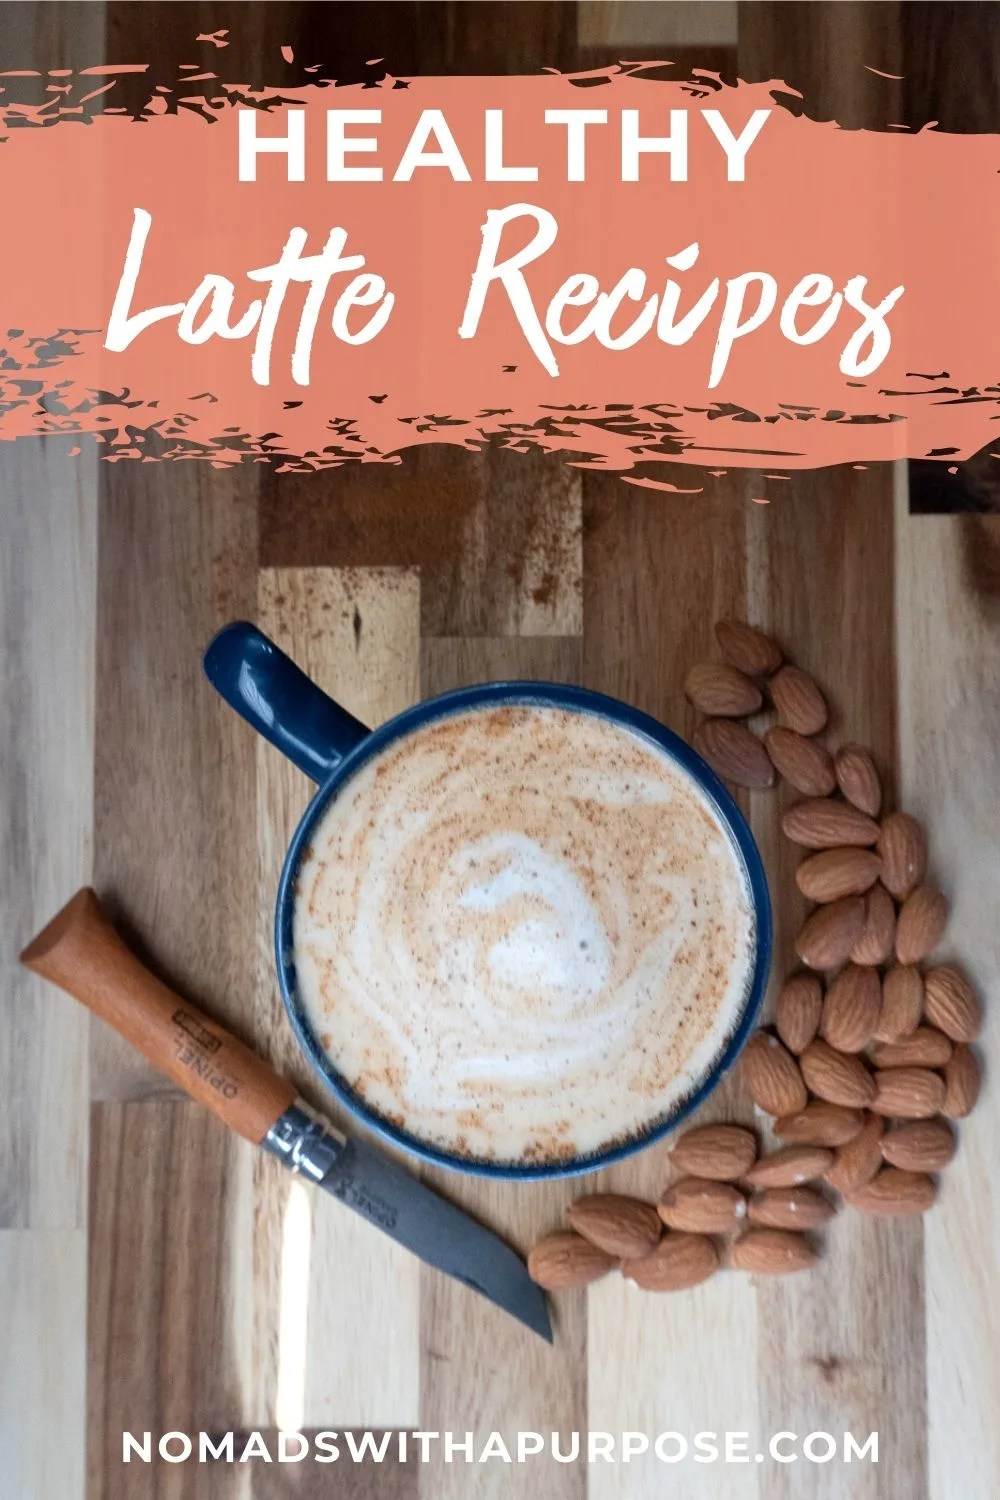 Healthy latte recipes